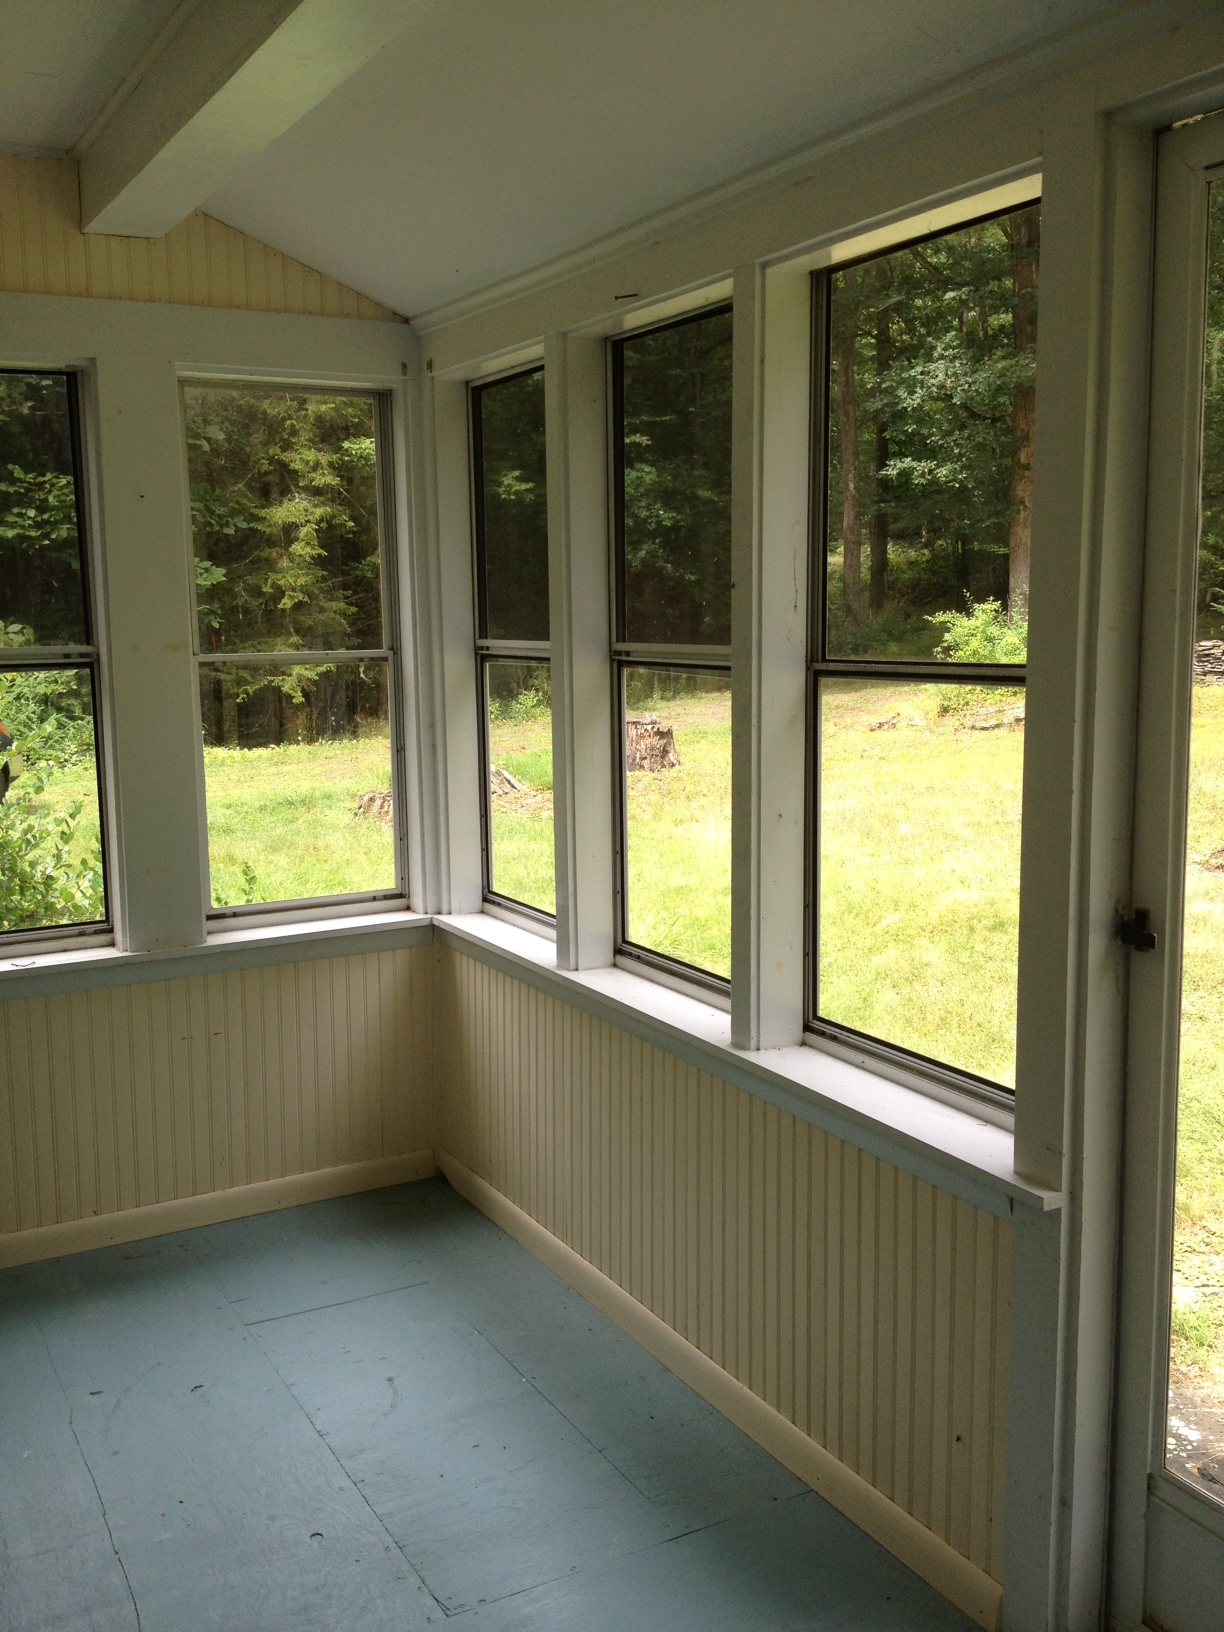 This old pinterest inspired house sleeping porch edition for New window ideas